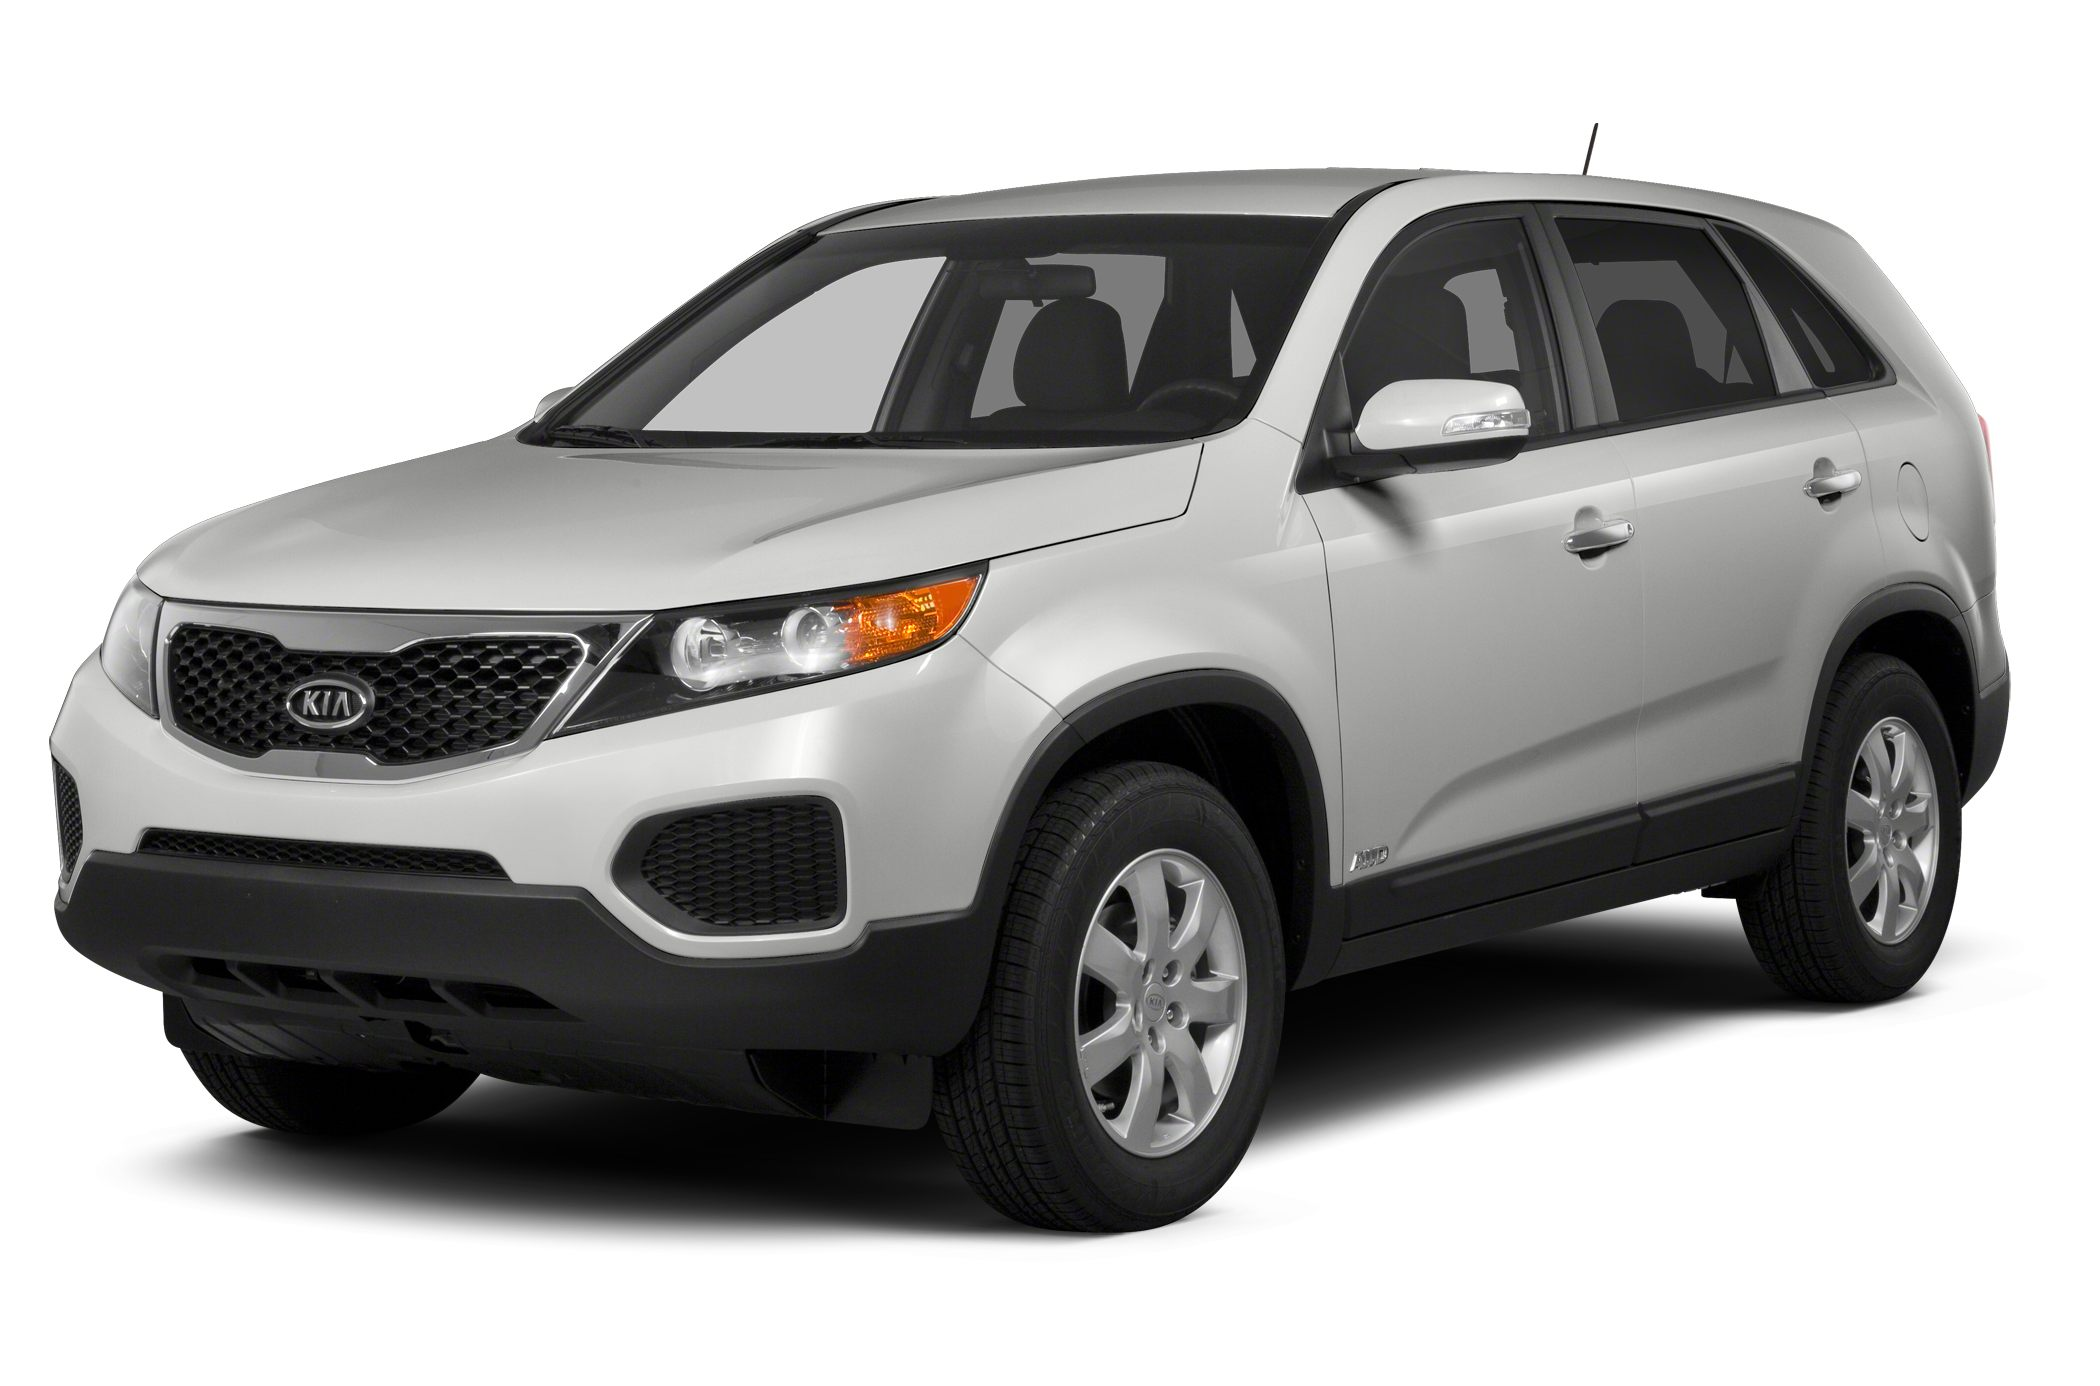 2011 Kia Sorento LX SUV for sale in Pendleton for $16,900 with 42,938 miles